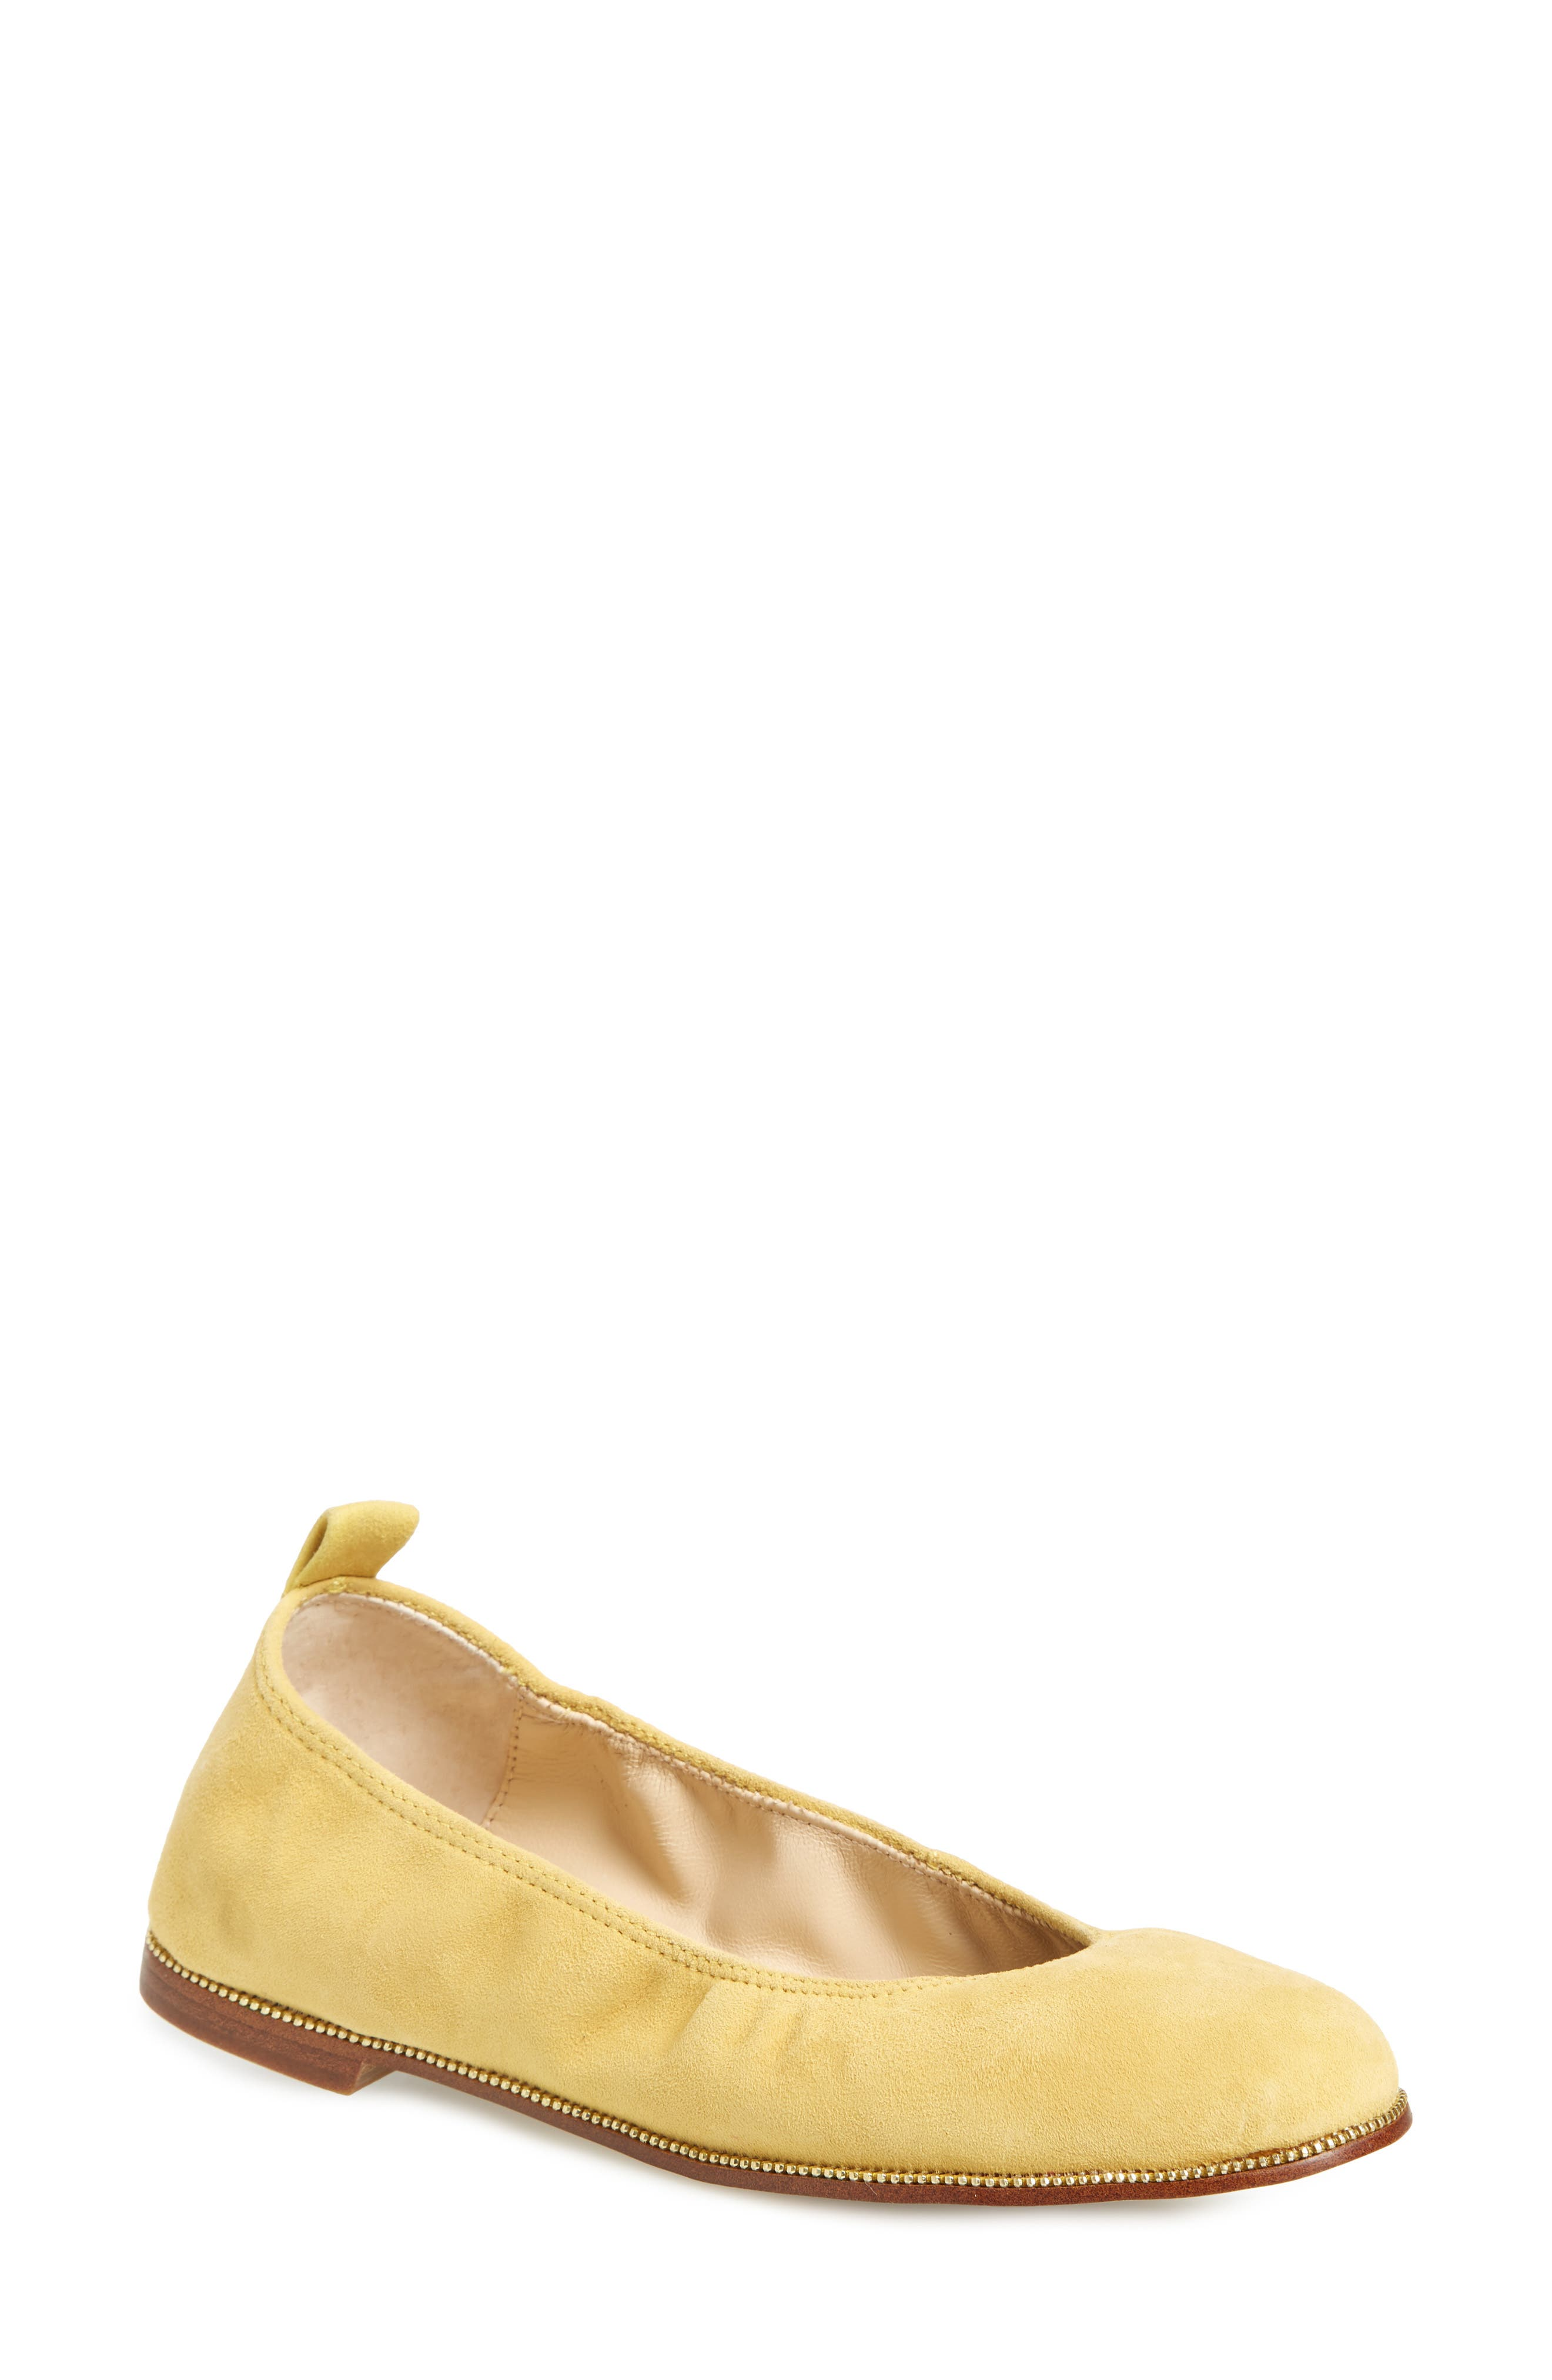 Browse For Ballerinas Unisex Yellow C91503876